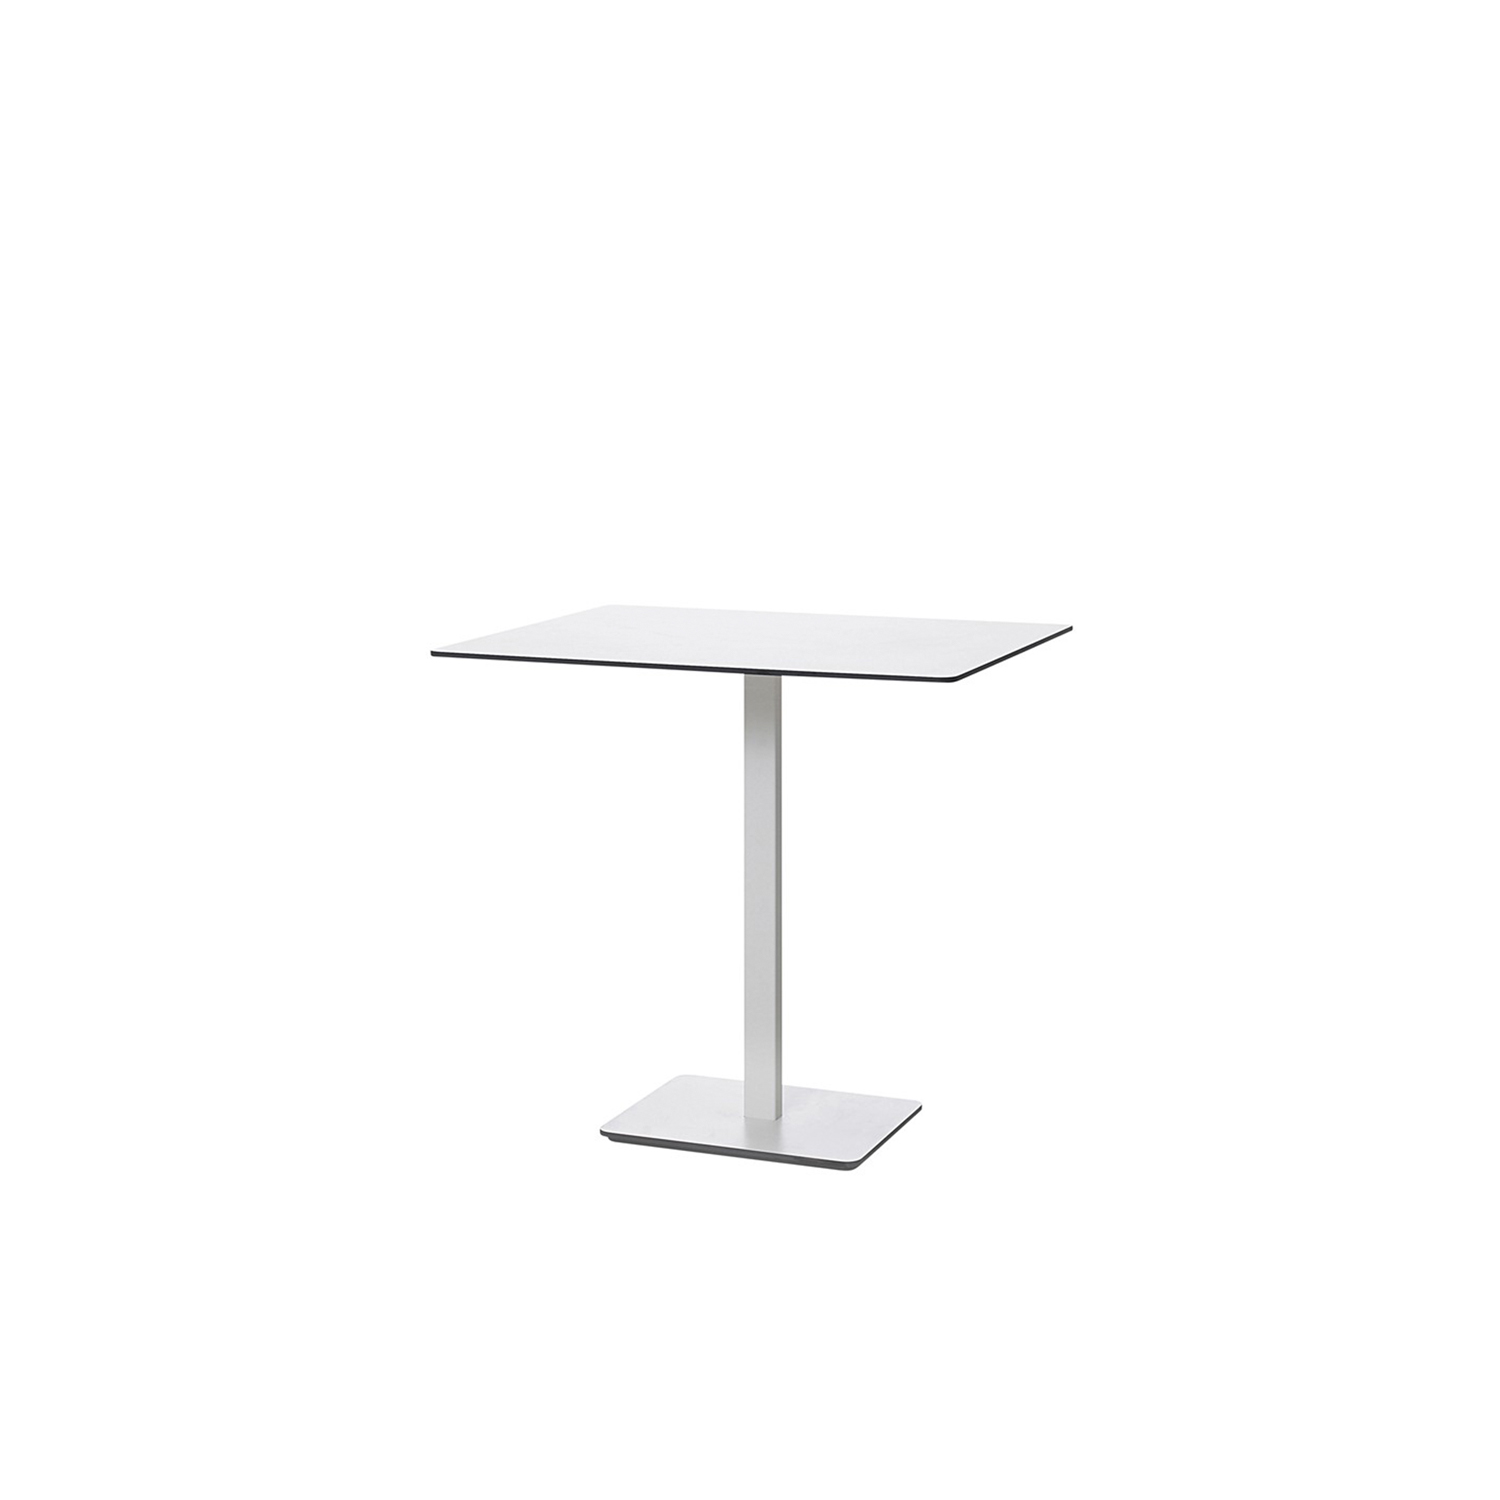 Ponoq Rectangular Table - In the beginning, ponoq (2009-2010) was a wall mounted coat rack in compact laminate. Our product development led to free-standing clothes hanger with base and pillars, with or without umbrella stands. The pillars and the base-plate made it easy to develop further with a tabletop/base plate in the compact laminate which became a table. The pedestal table ponoq's base-plate can be secured to the floor using a concealed fitting and ideal in environments that are subjected to a lot of hard wear and tear.  Pedestal table comes in seven heights, with rectangular or round tabletops in a choice of sizes. ponoq has a tabletop/base-plate in white or black compact laminate, and supporting pedestals in white or black lacquered metal. ponoq pedestal table is ideal for waiting rooms, corridors, schools, museums, art galleries or wherever furniture needs to cope with a lot of hard wear and tear.  Additional heights and dimensions are available, please see technical sheet attached and enquire for more details. | Matter of Stuff